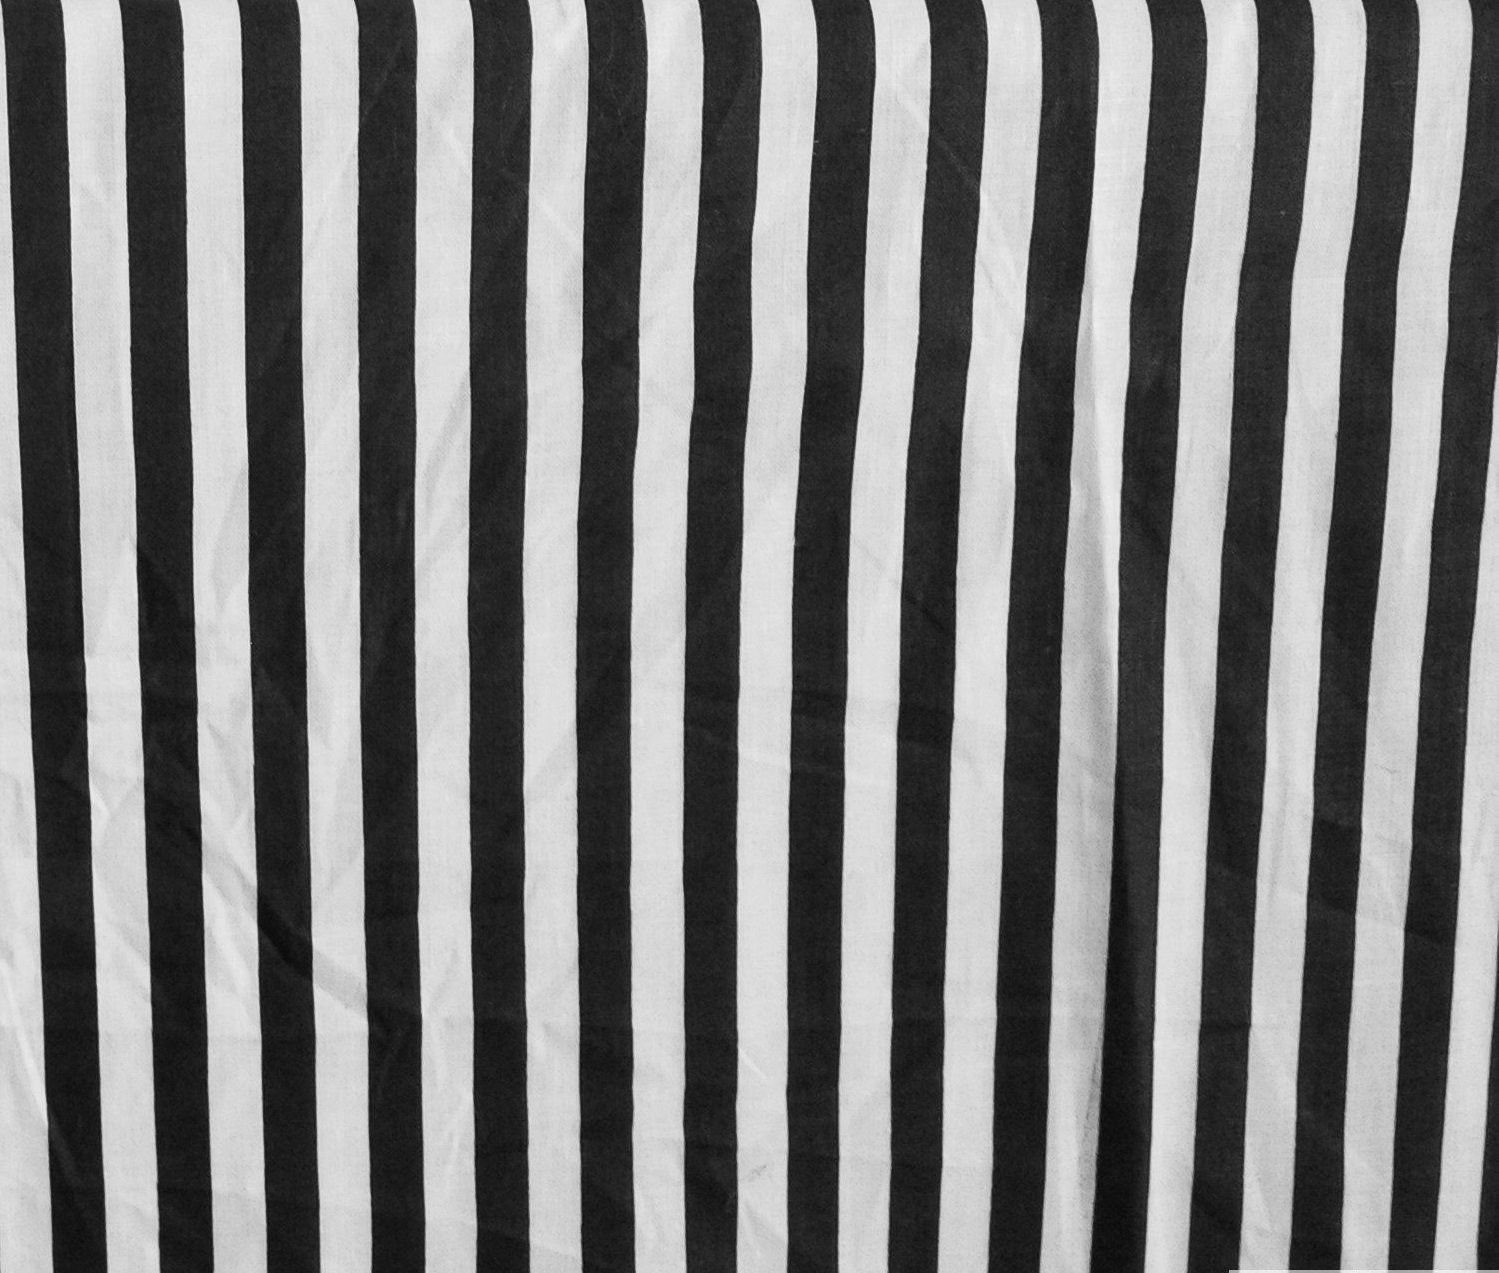 Stripes Small Black White Poly Cotton 58 Inch Fabric By the Yard (F.E.) by The Fabric Exchange   B00GWU4Z6W